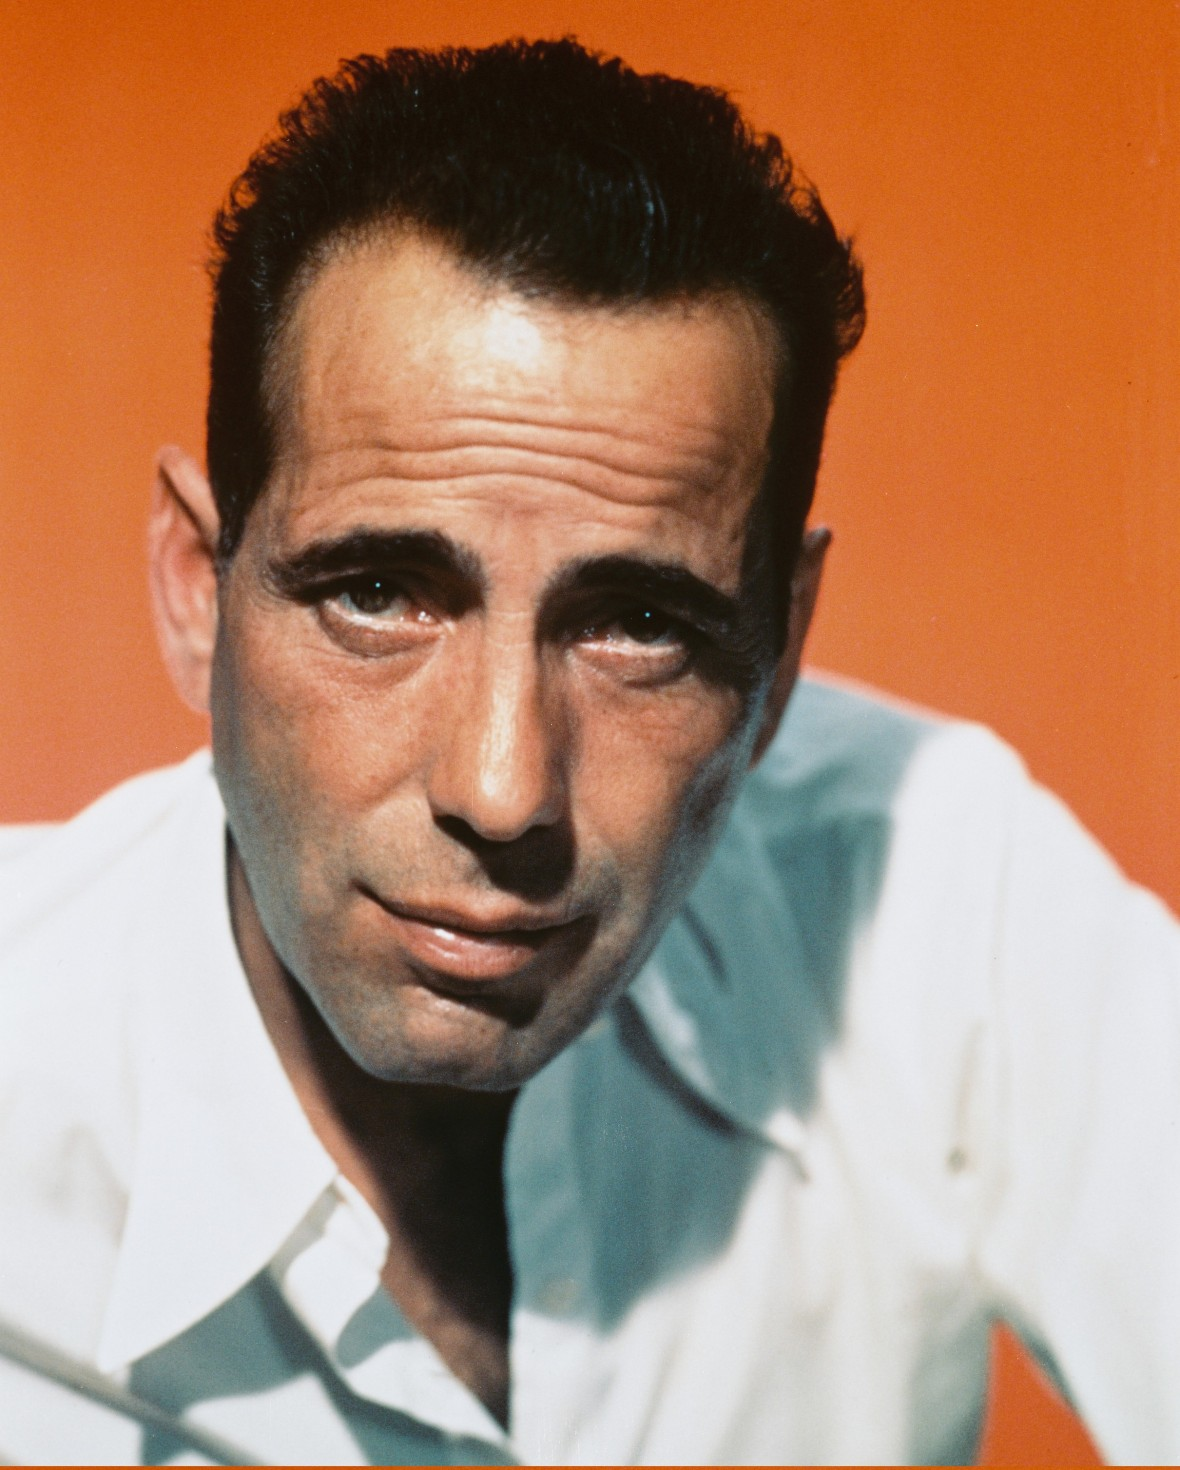 humphrey bogart getty images